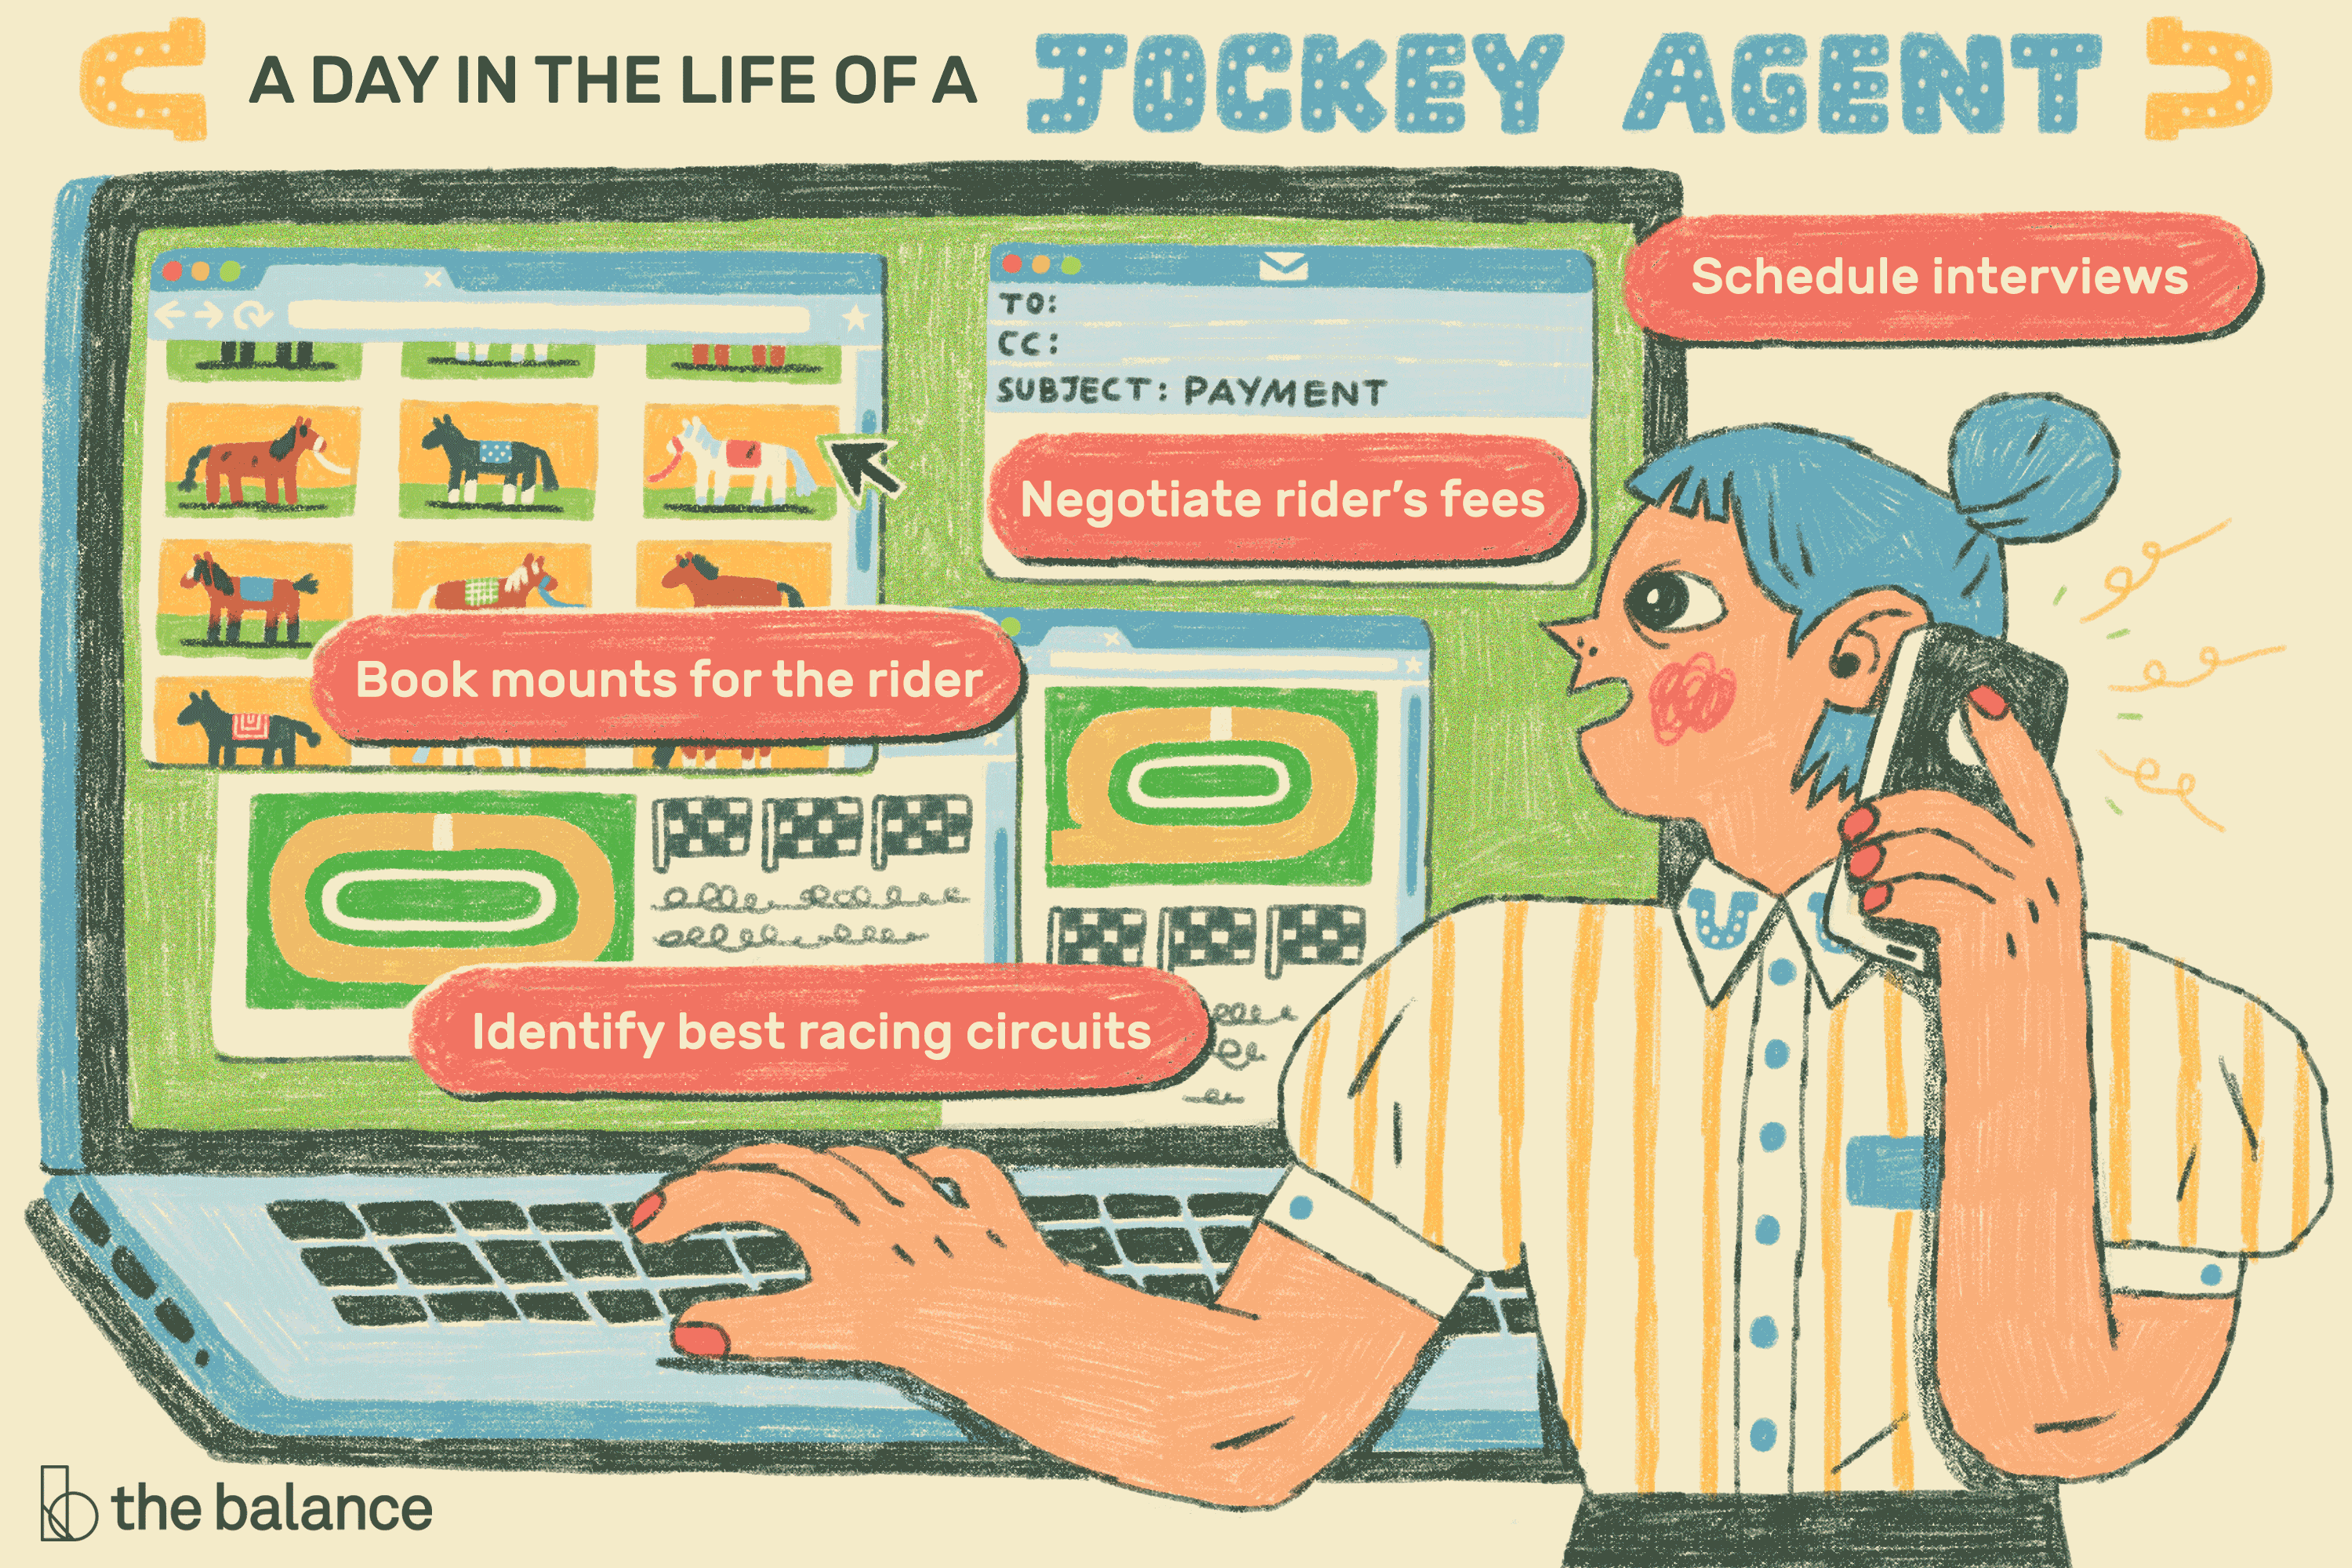 Jockey Agent Job Description: Salary, Skills, & More